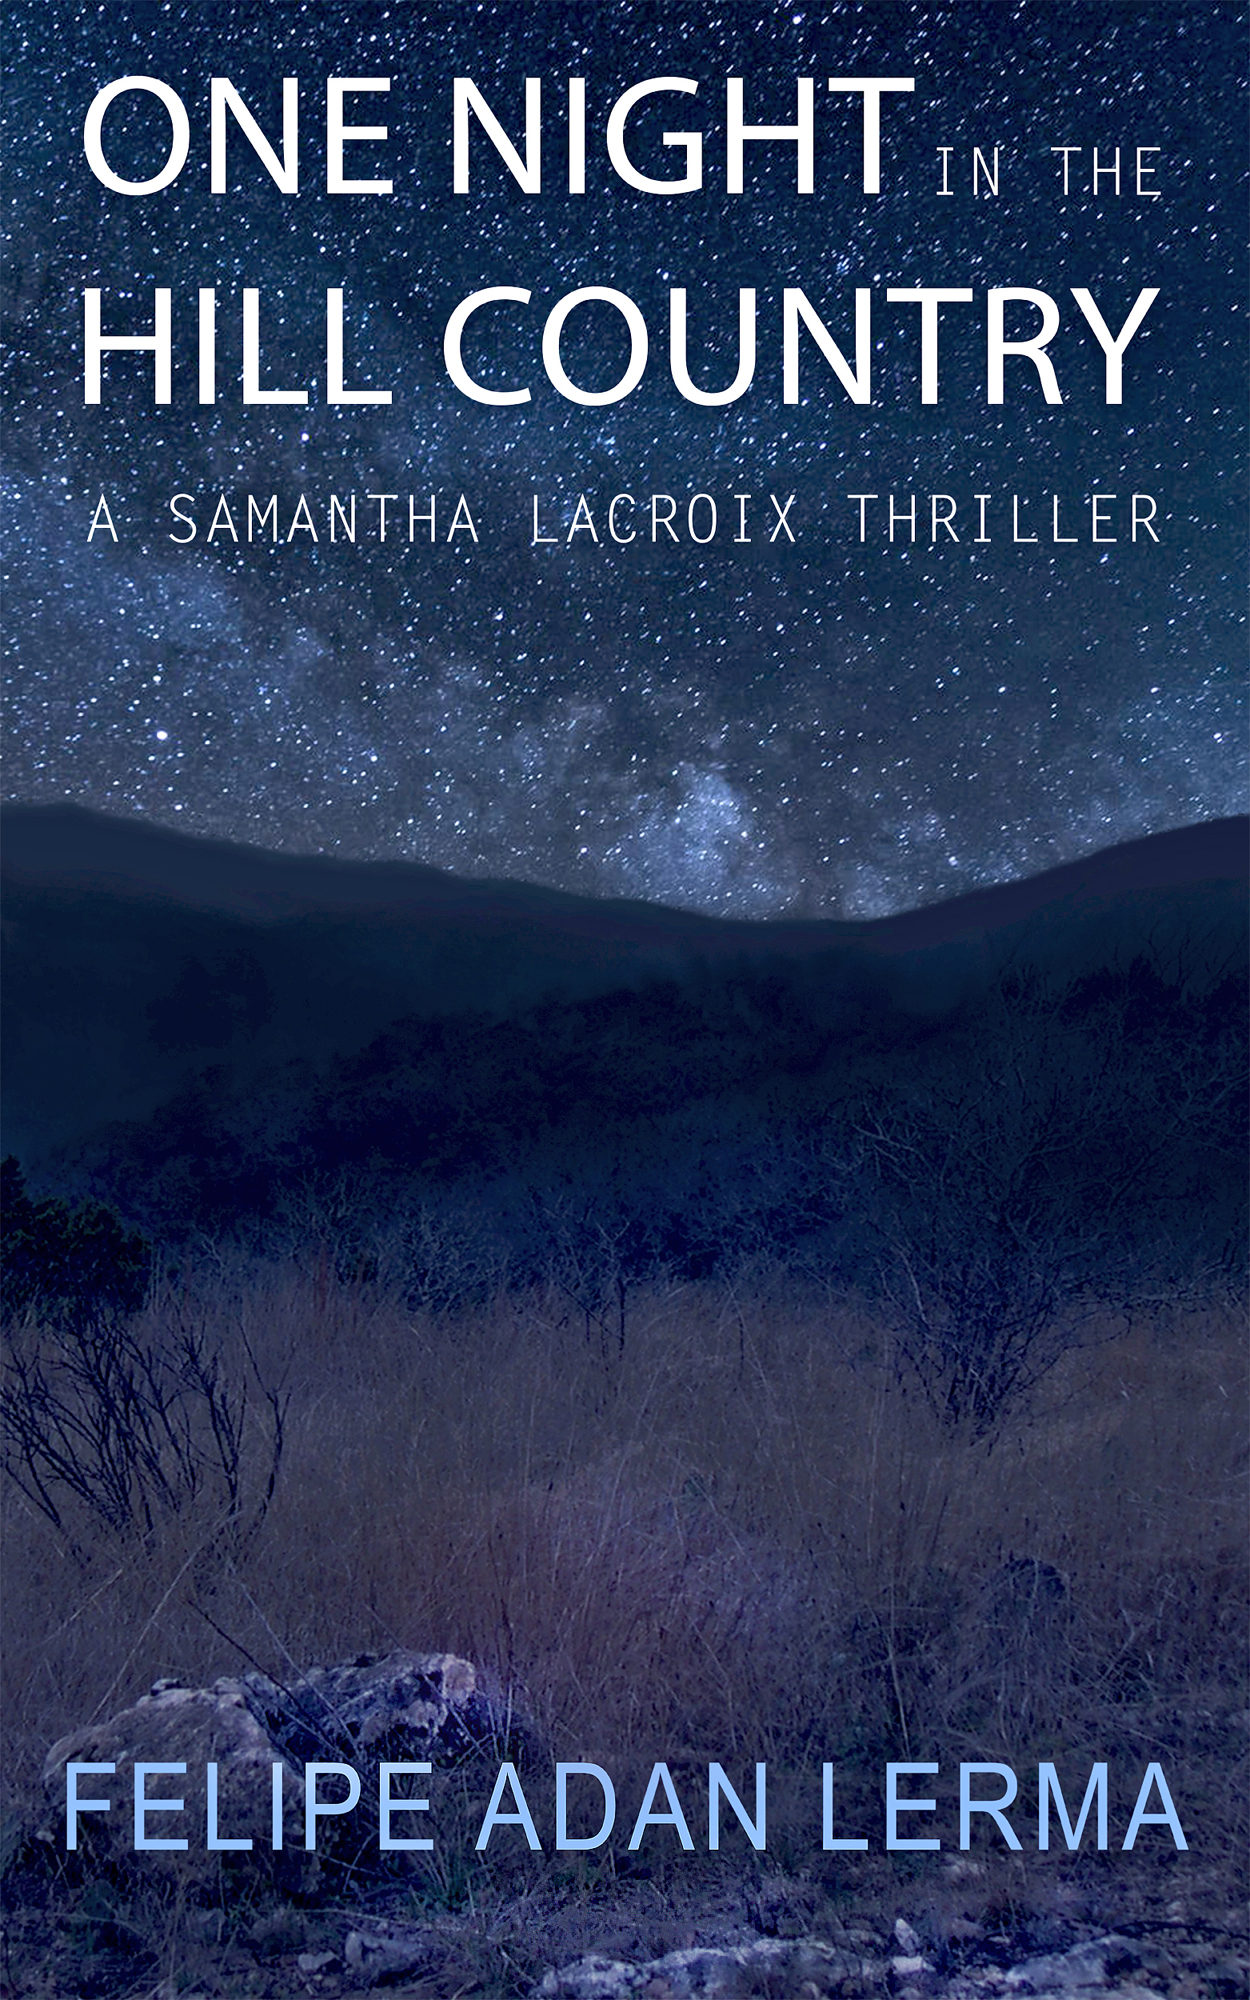 One Night the Hill Country, by Felipe Adan Lerma - multi-generational thriller set in Central Texas.